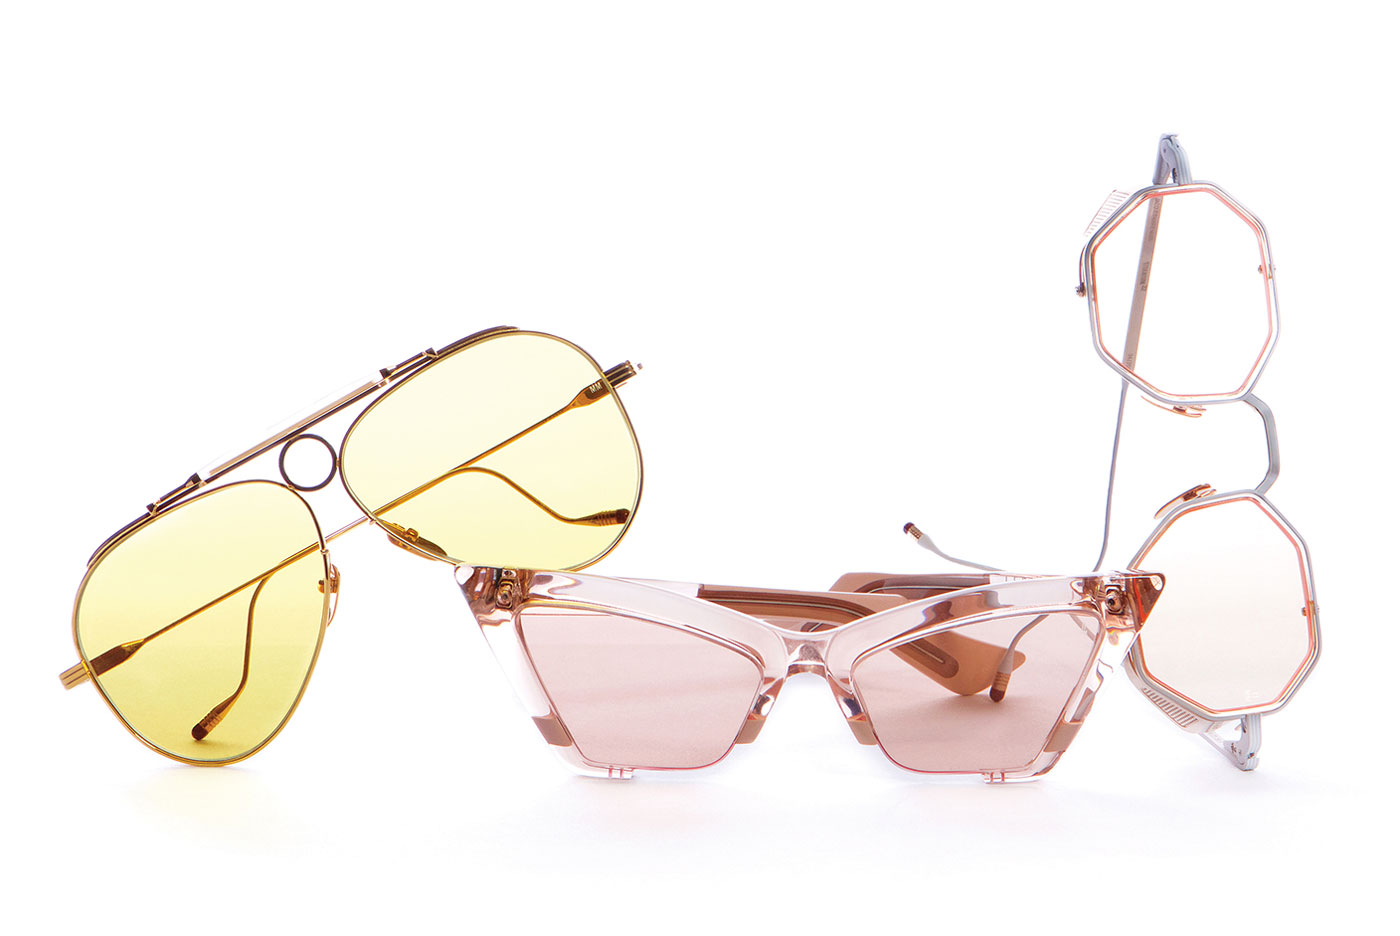 x-AE-InTheBag-Glasses-Feature-1